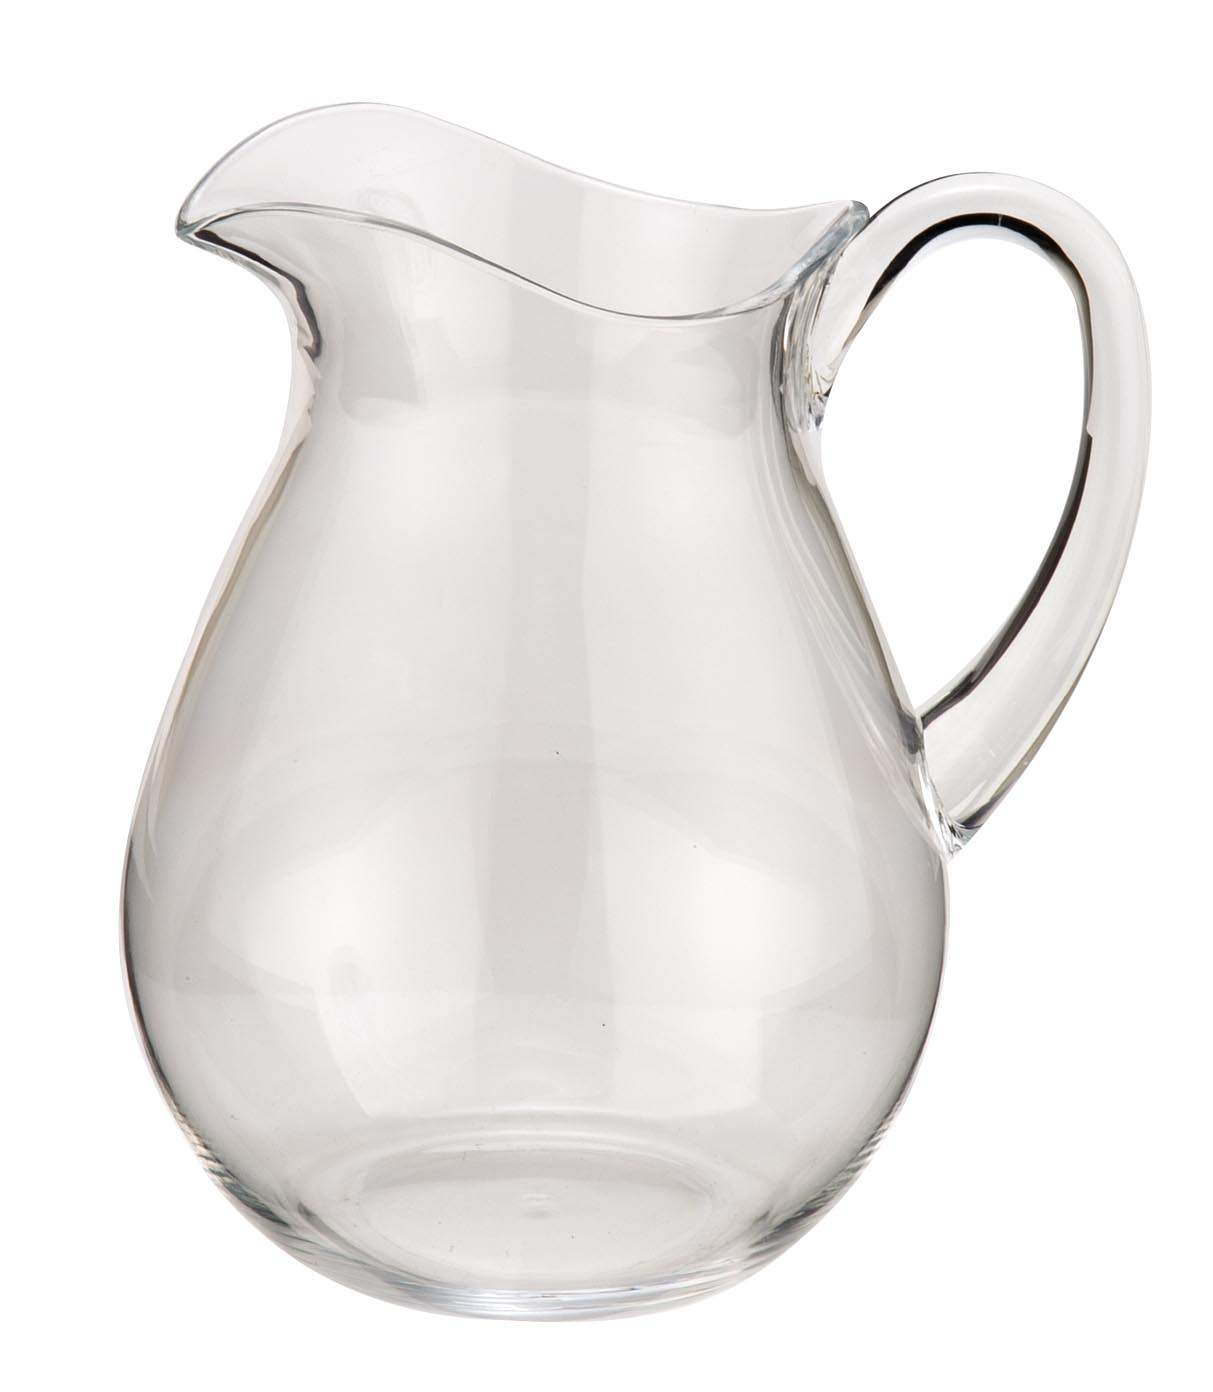 Kuo Yu Dardo Pitcher The Potlok